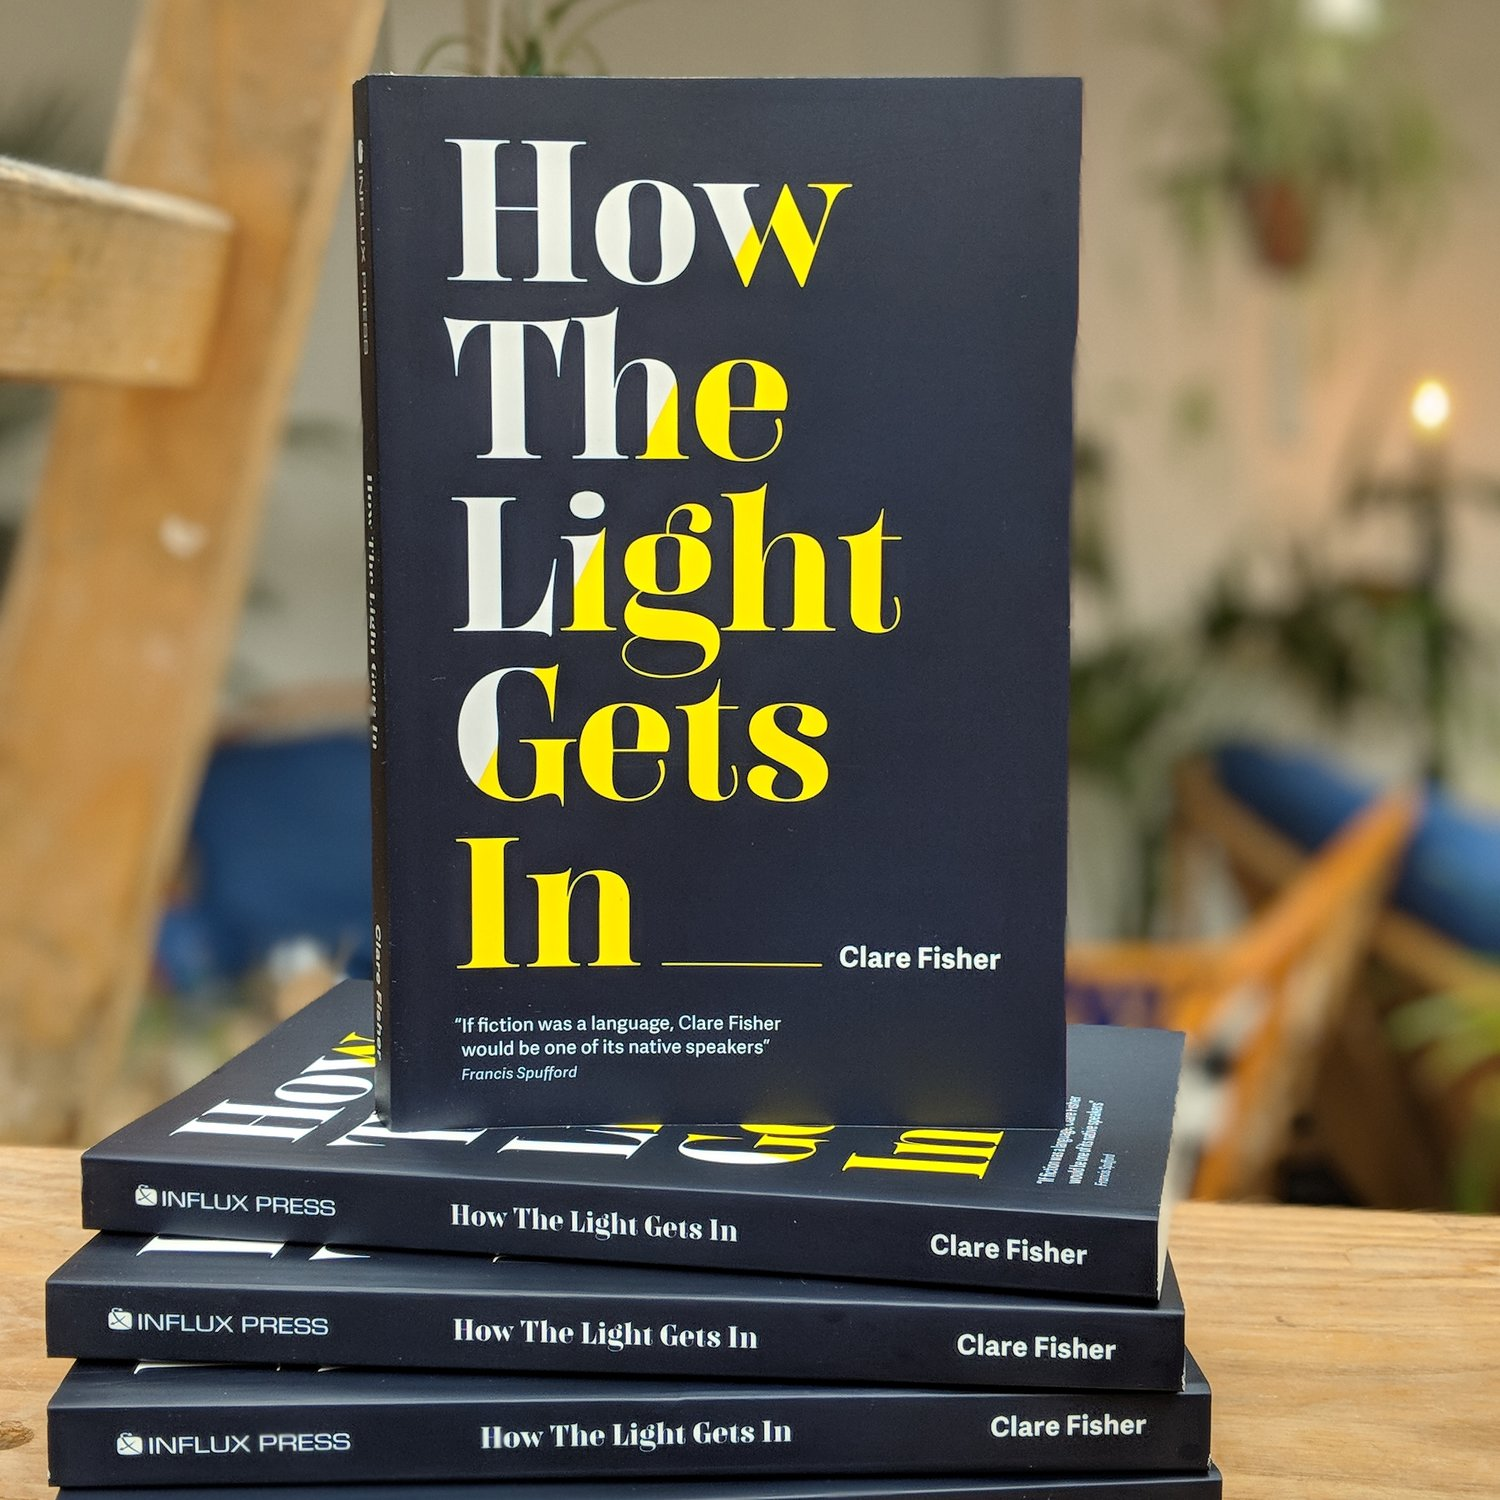 REVIEW: HOW THE LIGHT GETS IN